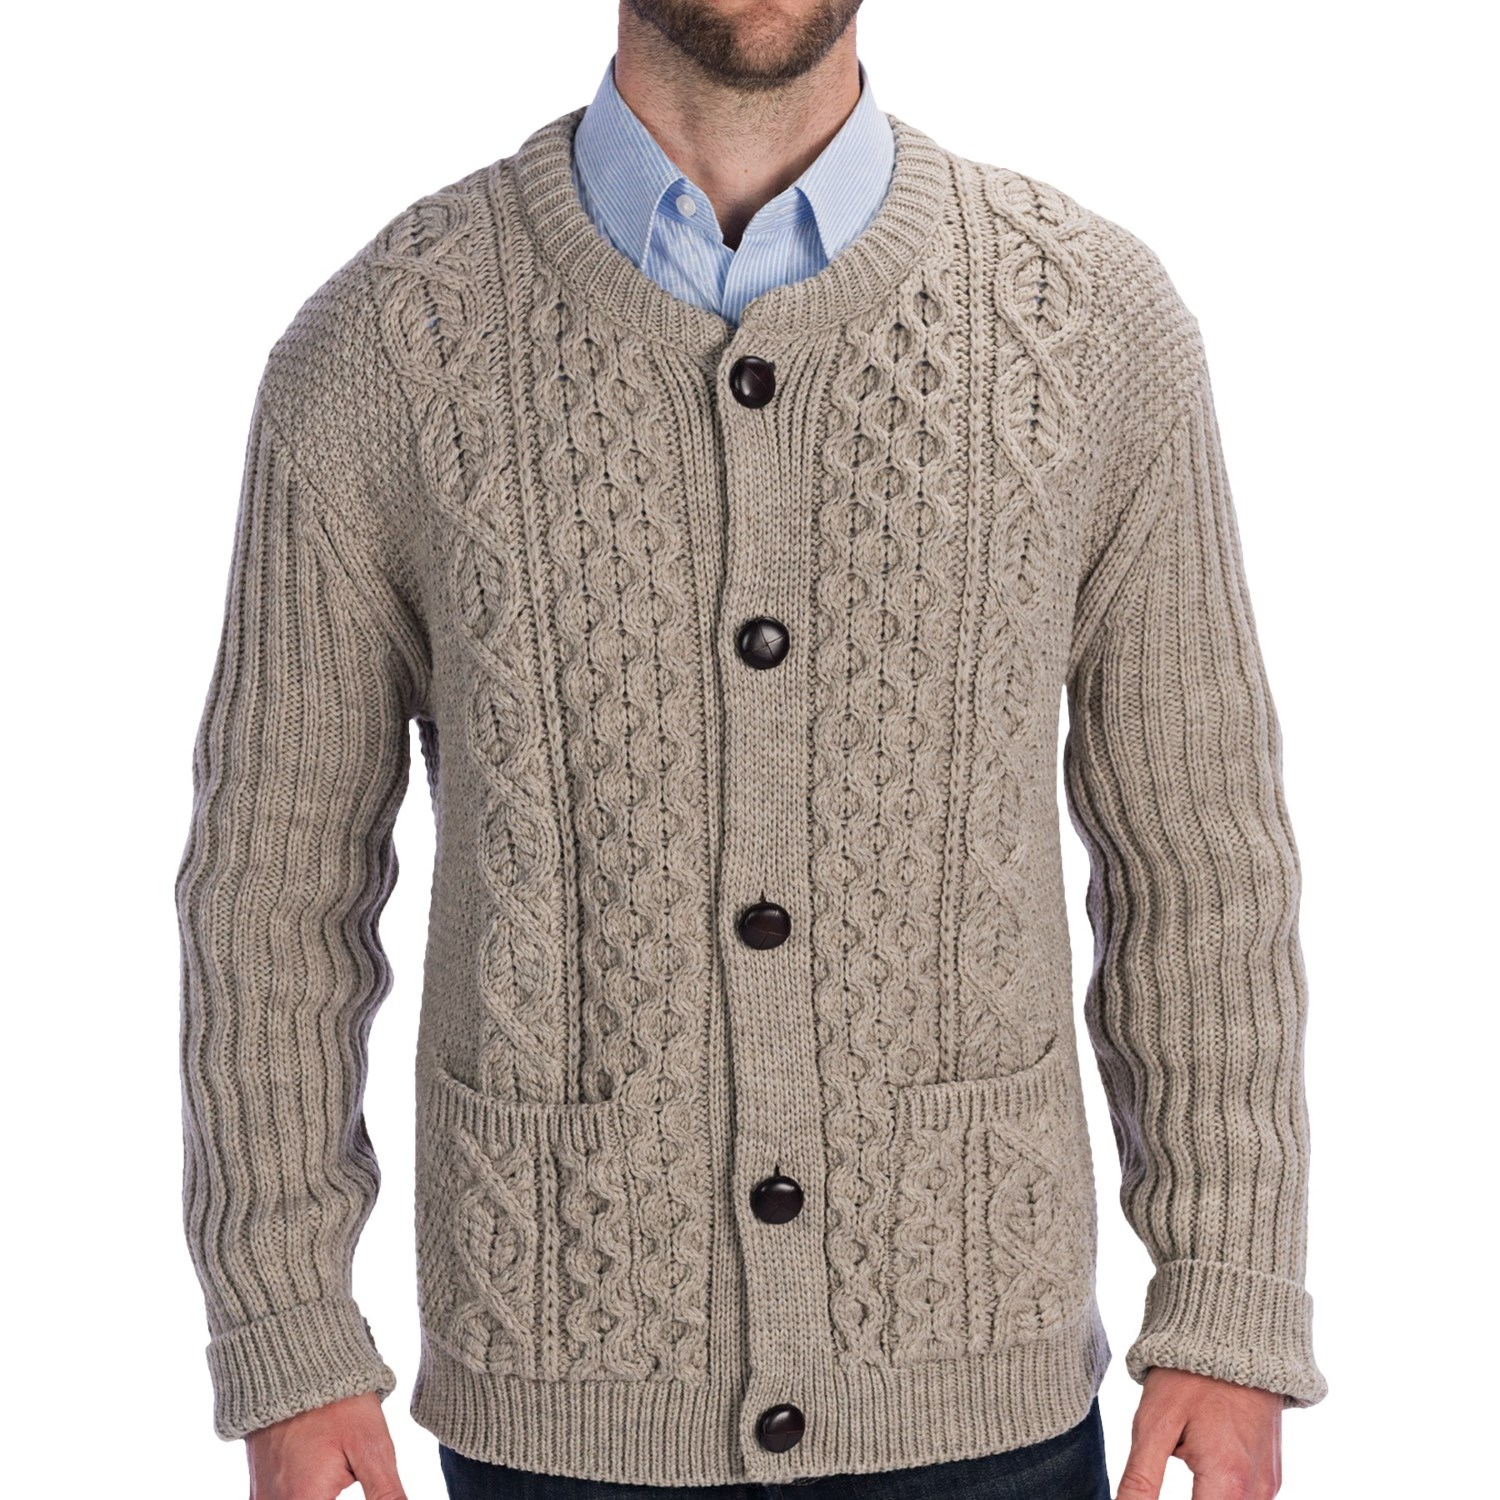 Each knit sweater pattern was selected to fit the specific needs of men's sweaters. The knit gloves and men's knit scarf pattern are essential accessories that satisfy simplicity without boredom. From beginner to experienced, each of these FREE knitting patterns for men can be both a delight and challenge.